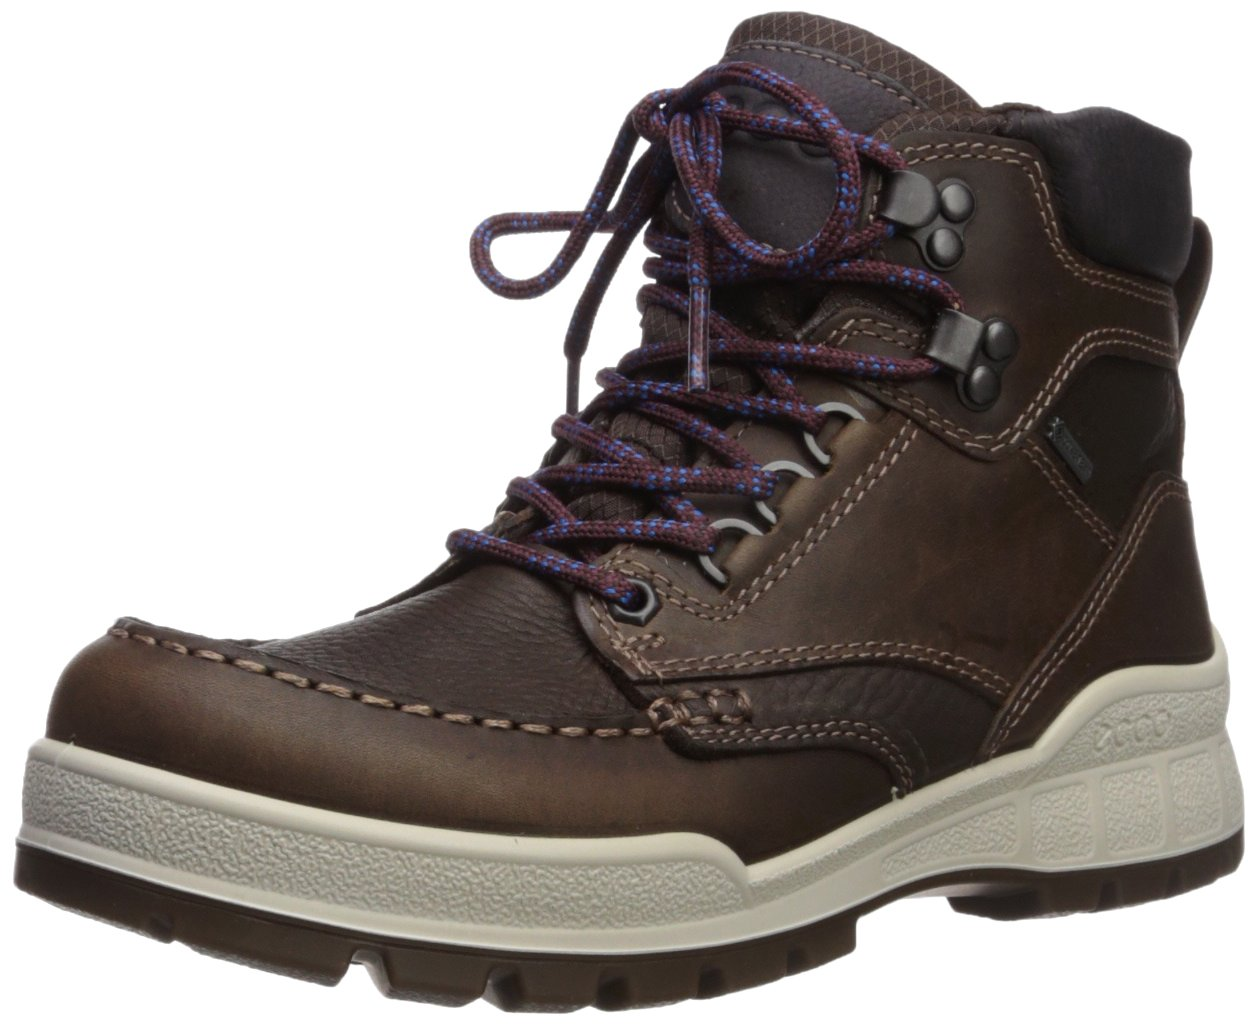 coffee Brown Track Outdoor 25Chaussures Ecco shale40 Multisport FemmeMarroncocoa Eu H29EIWD